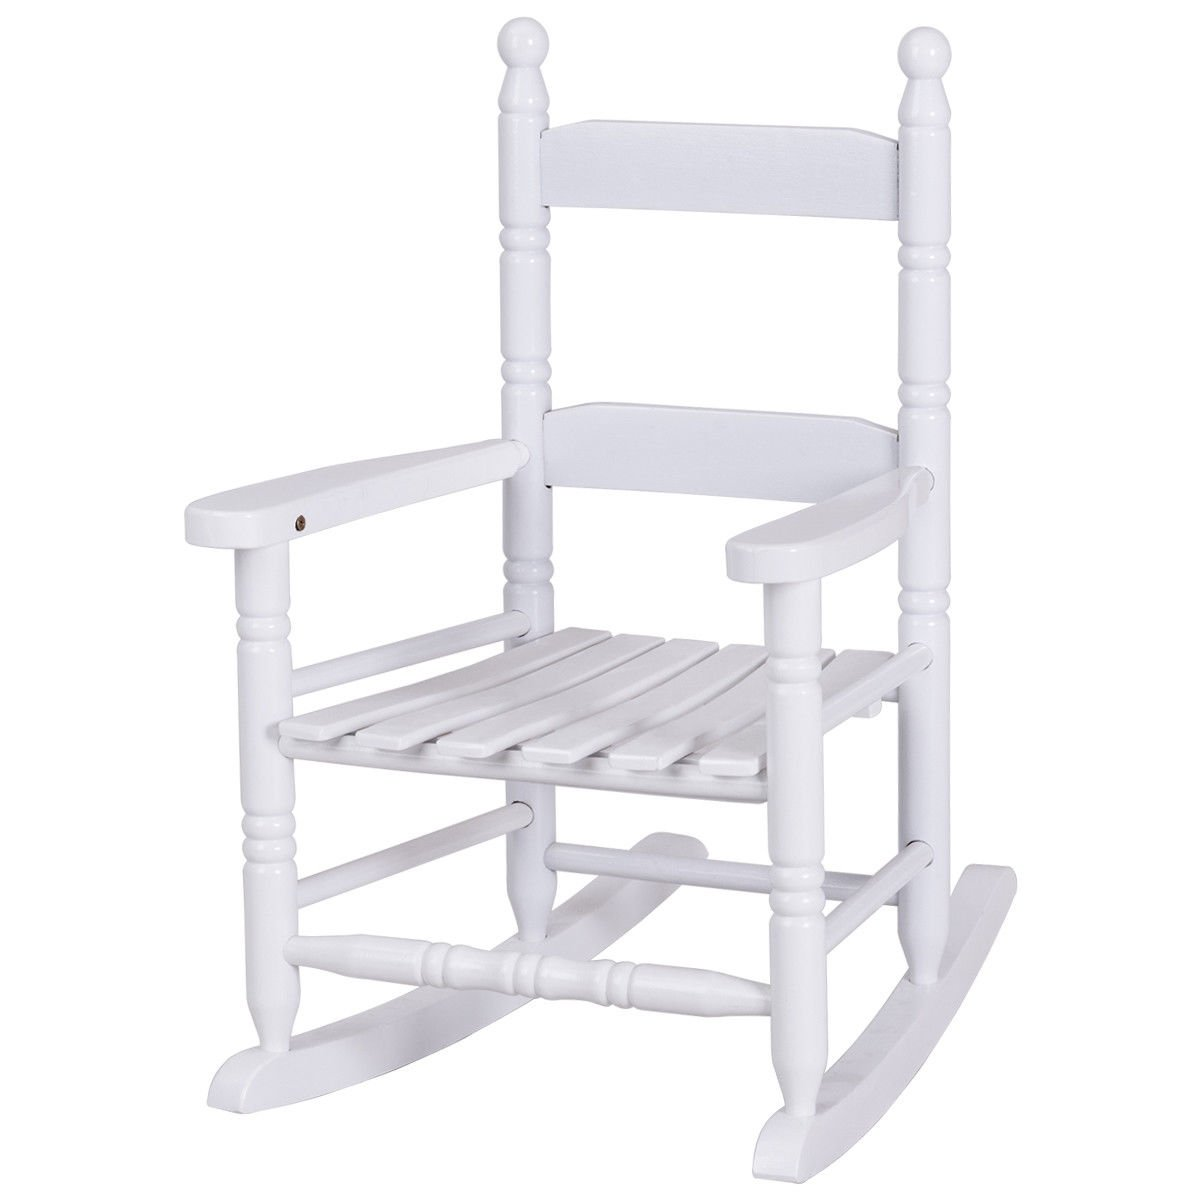 Child Rocking Chair Wooden Rocker for Aged 56-96 Months White by BWM.Co